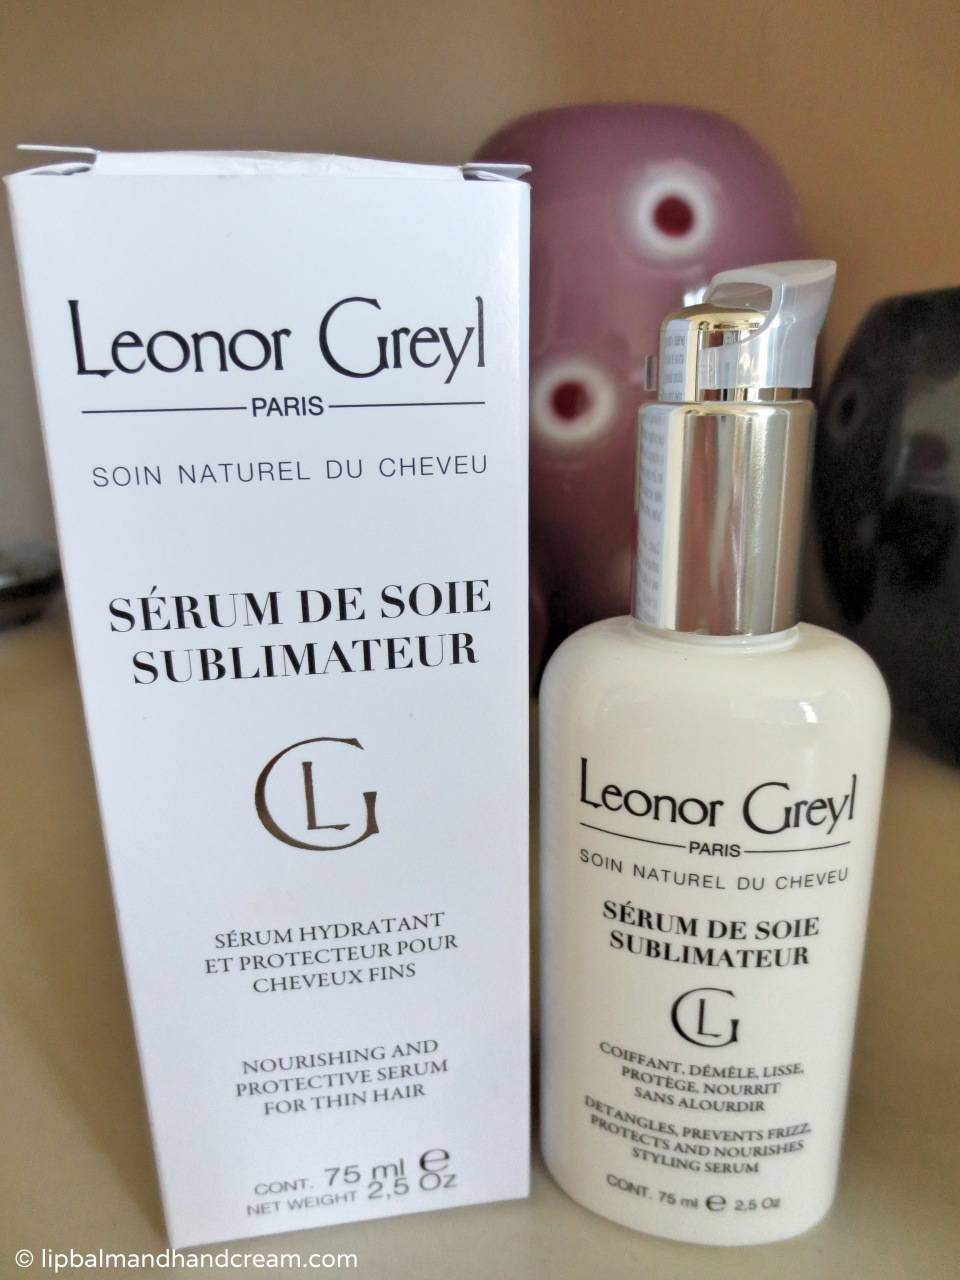 Fighting the frizz – Leonor Greyl's sérum de soie sublimateur creates silky hair